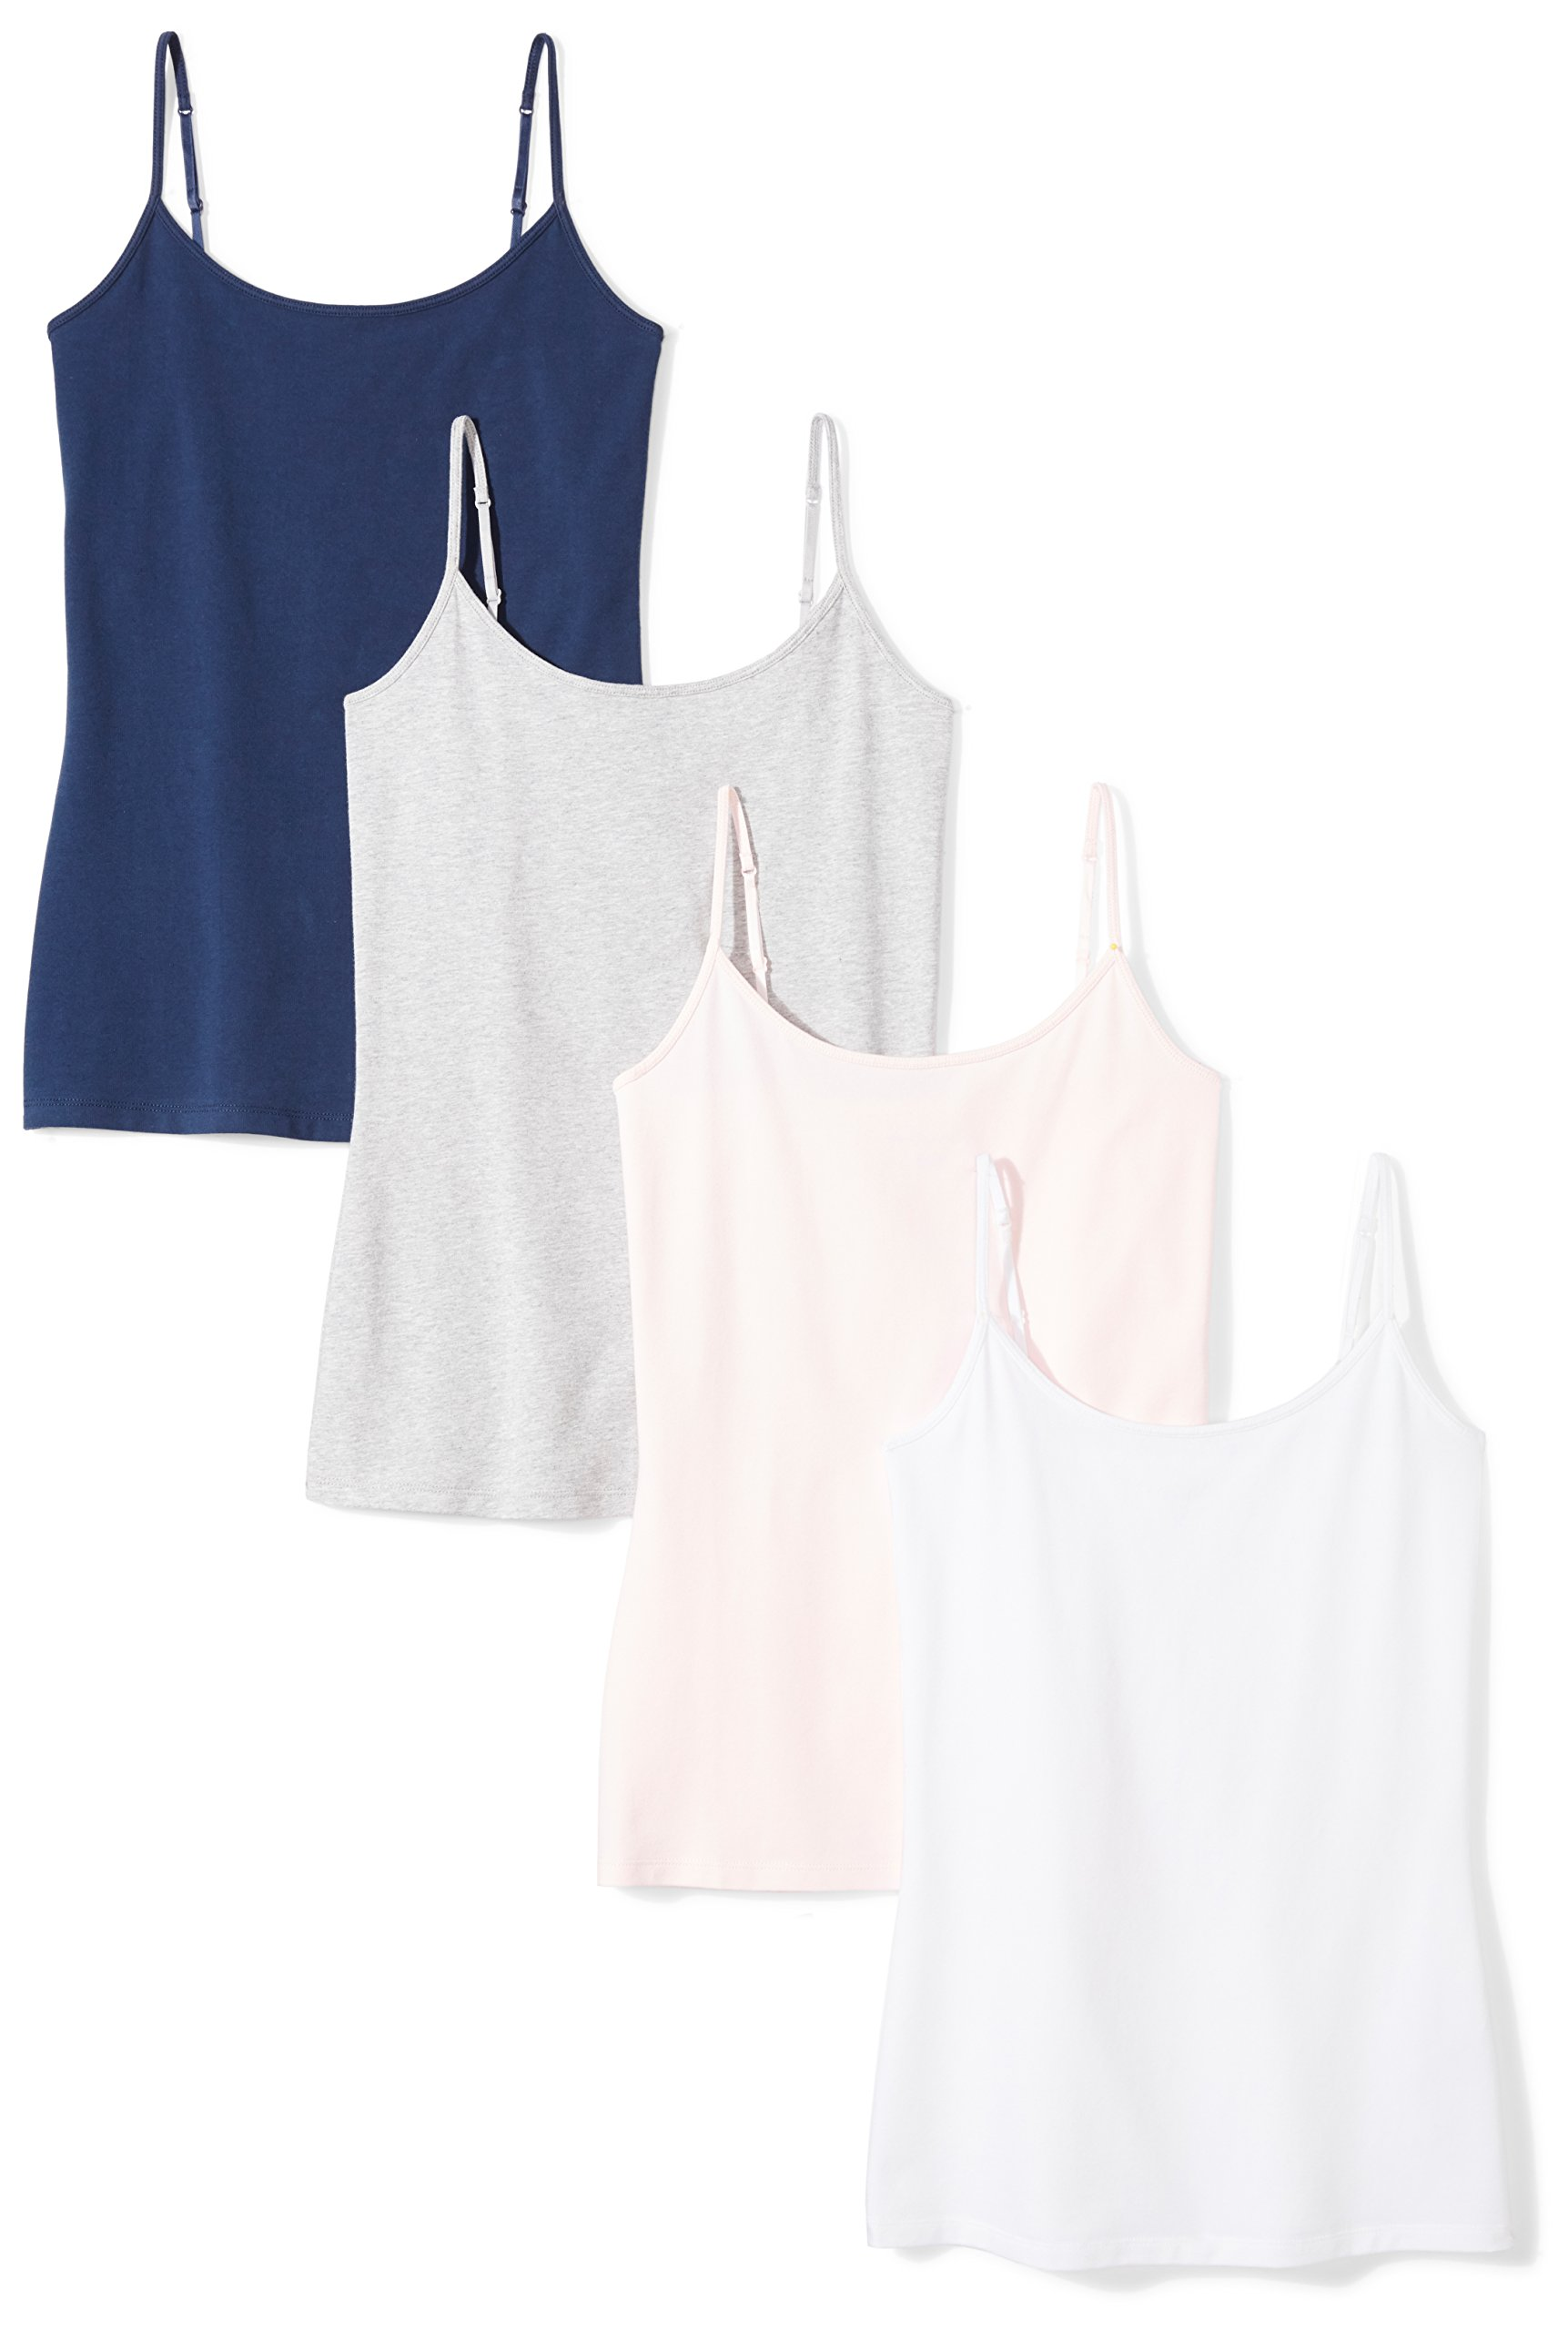 Amazon Essentials Womens Camisole Heather